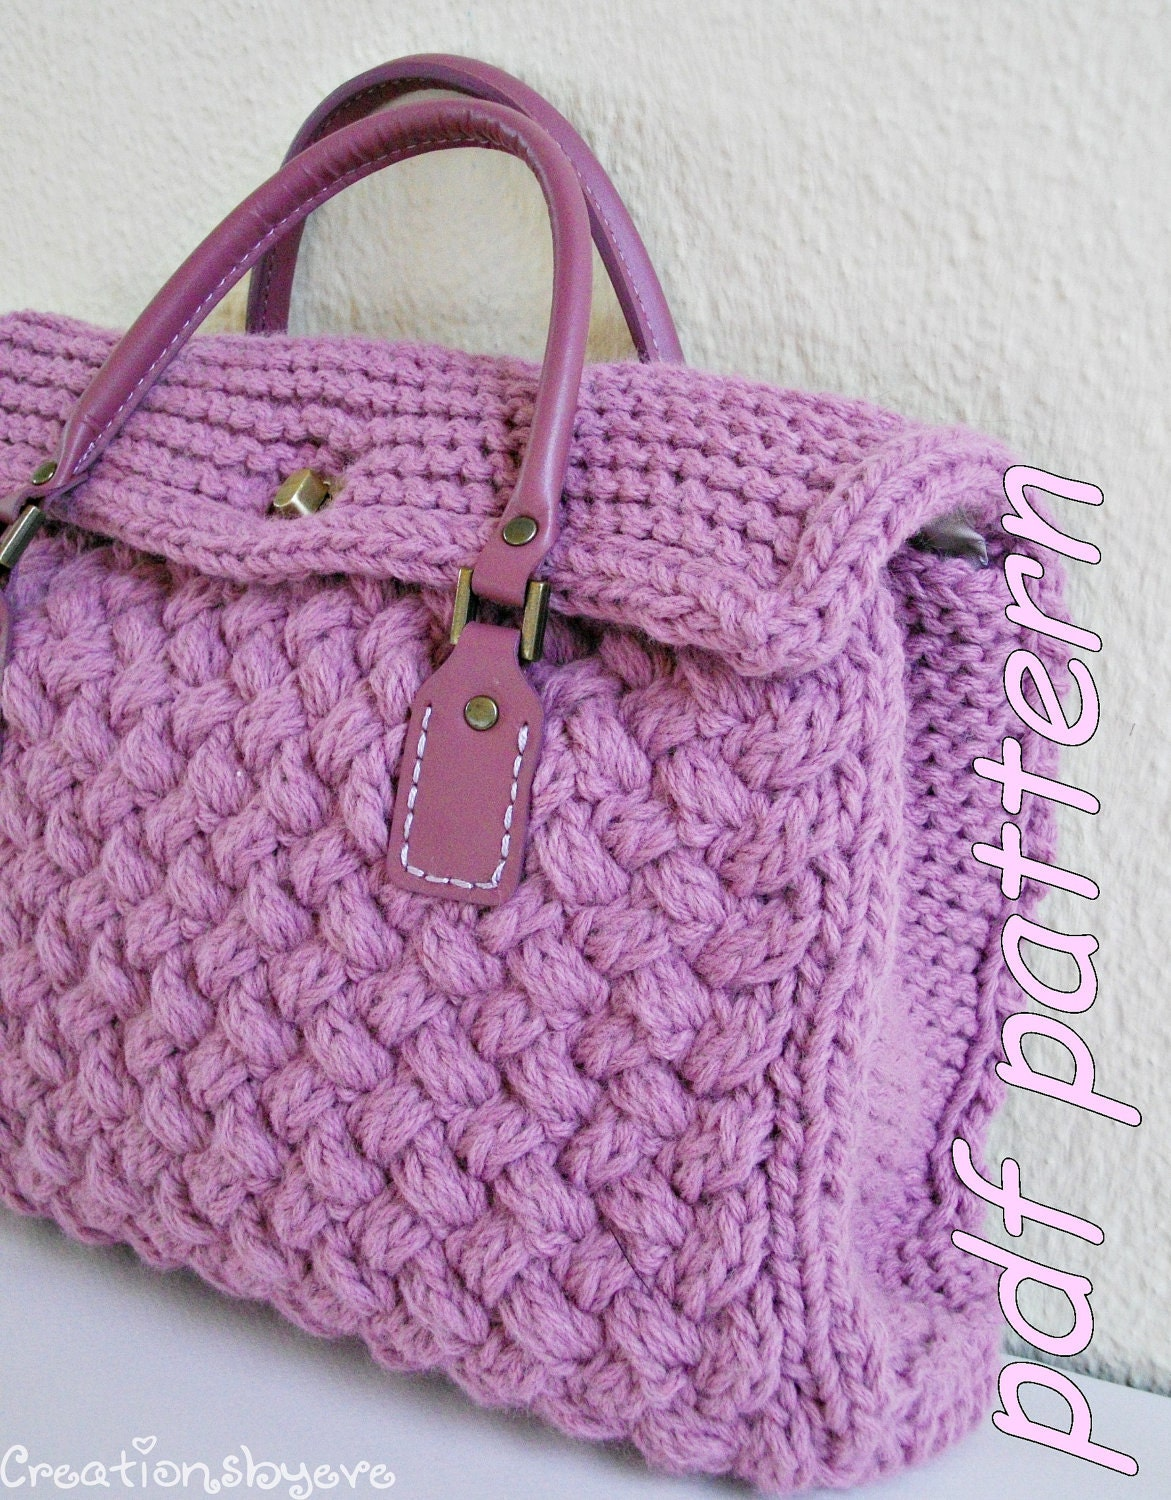 Knitted Purse Pattern : Stylish small textured hand-knit bag PDF pattern